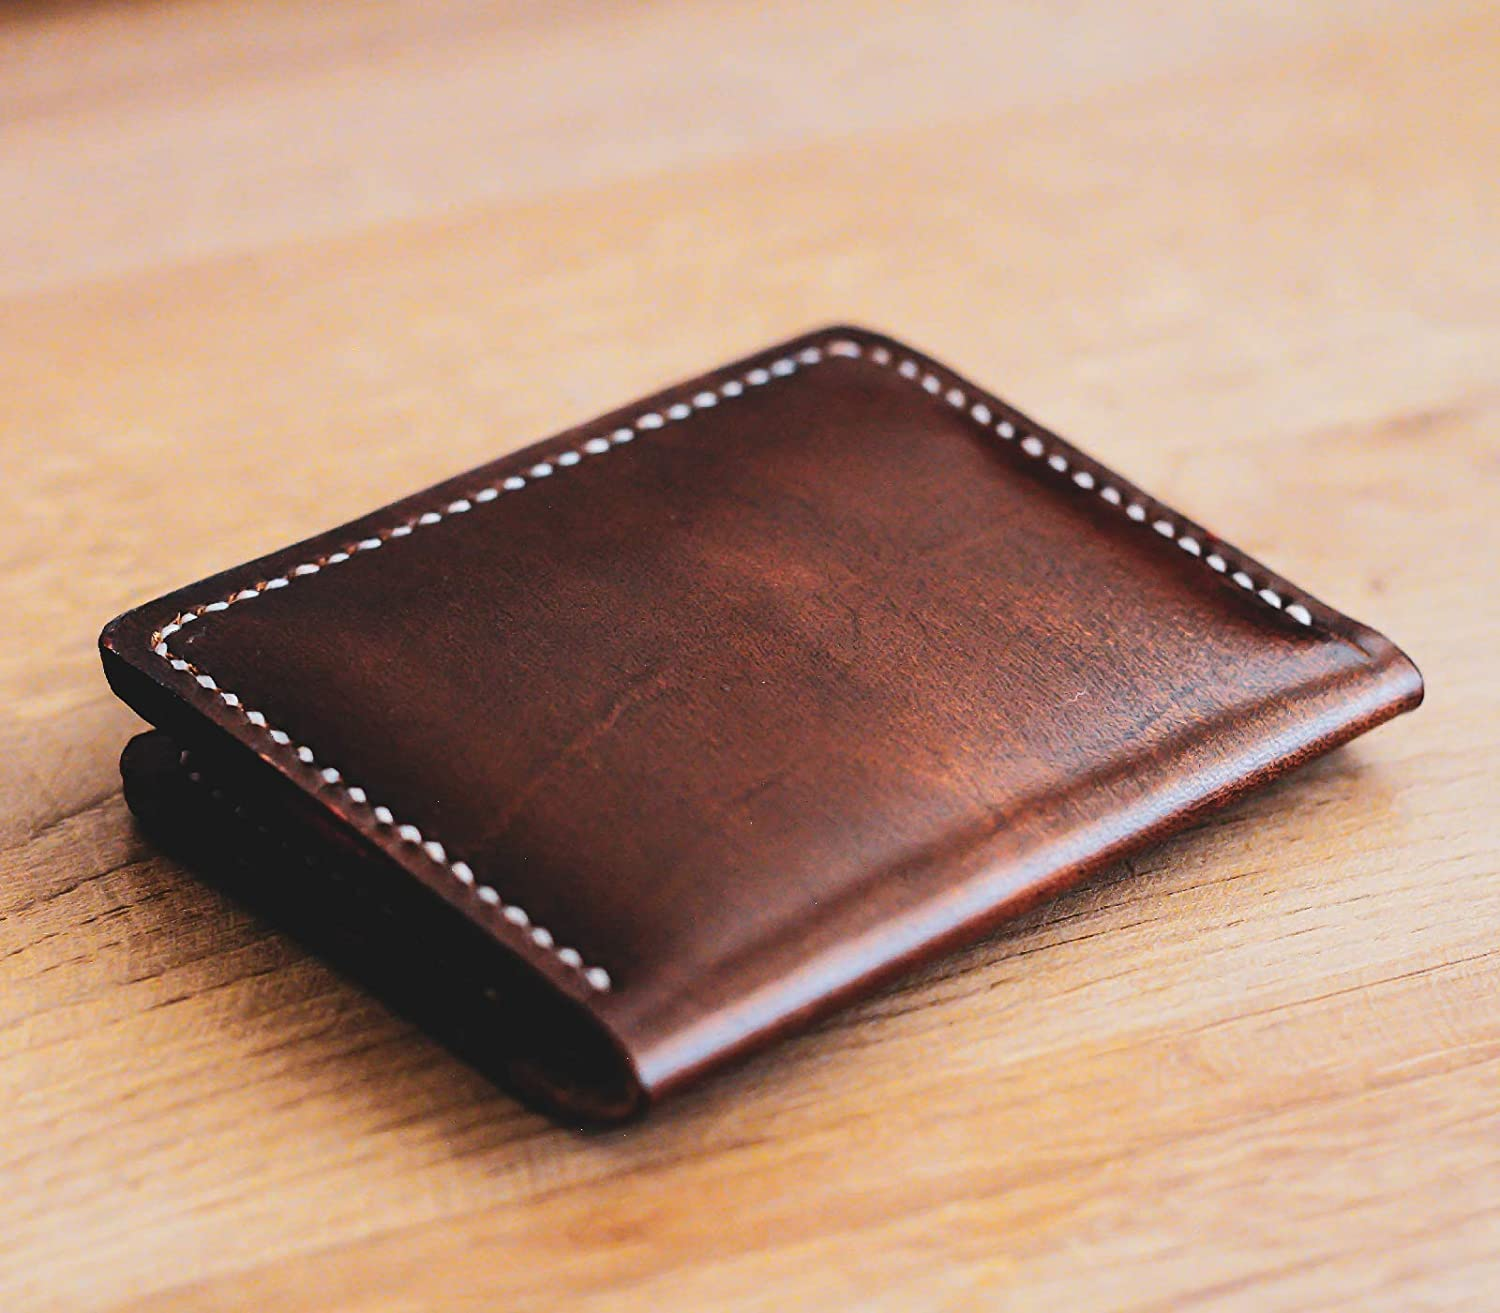 f88baedb414e10 Amazon.com: Wallets Money Clips, Mens Wallet, Handmade Wallet, Wallet For  Men, Wallet Leather, Card Holder Wallet, Wallet For Women, Fathers Gift:  Handmade